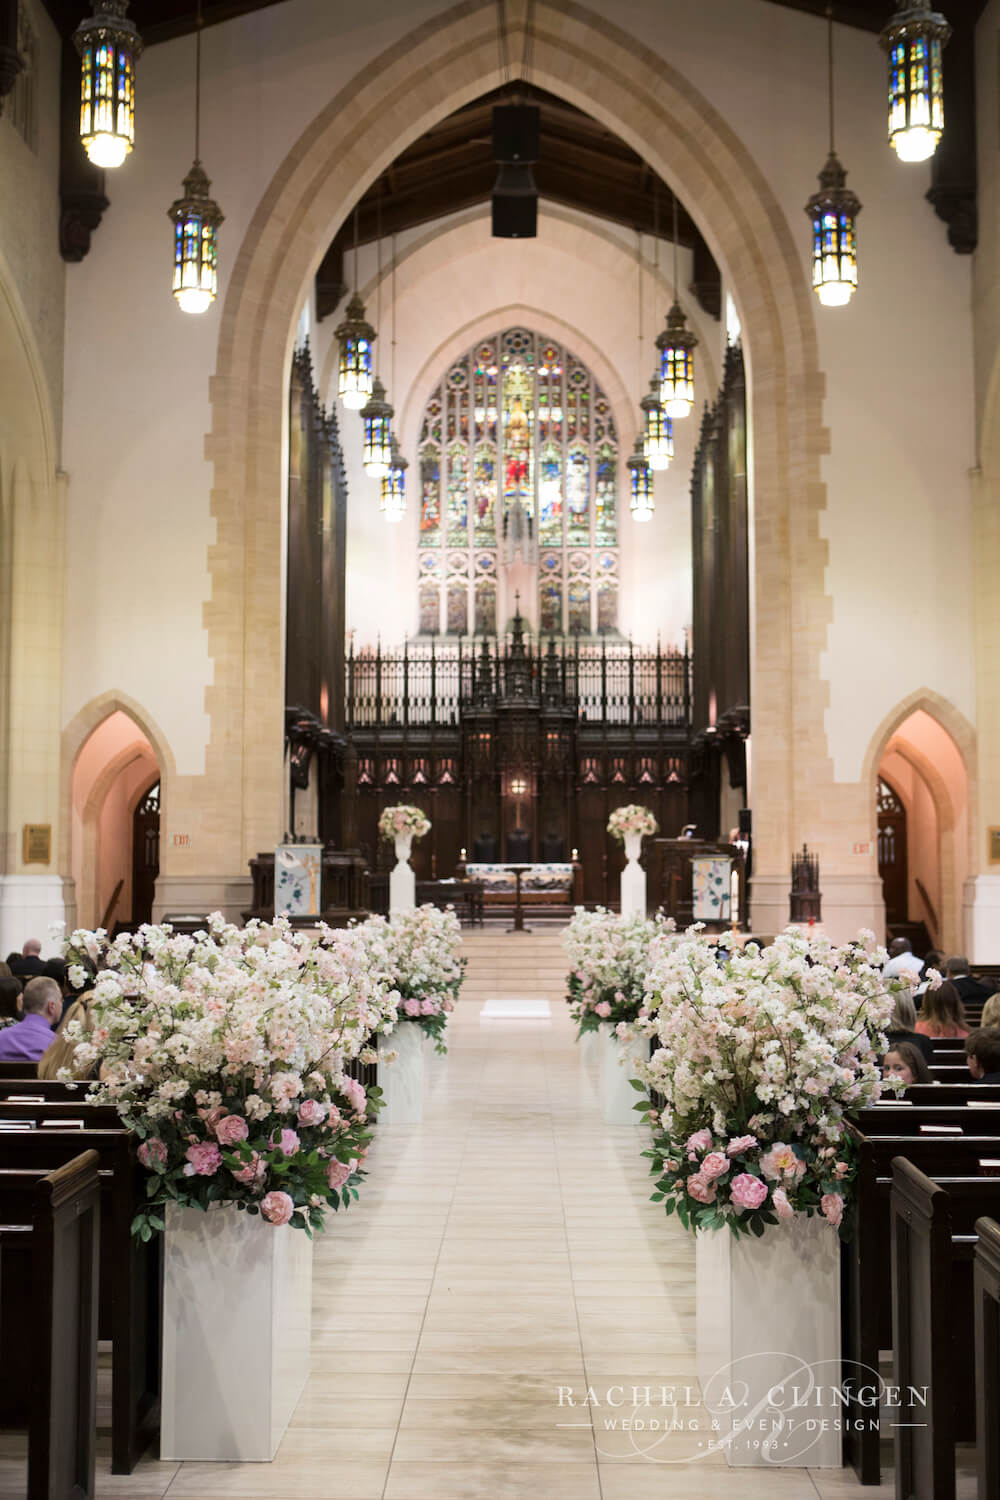 The metropolitan united church in down town toronto hosted Courtney and Anthony's guests for their spring wedding decorated by wedding designer Rachel A. Clingen Wedding Design. Cherry blossoms lined with aisle in contemporary tins.